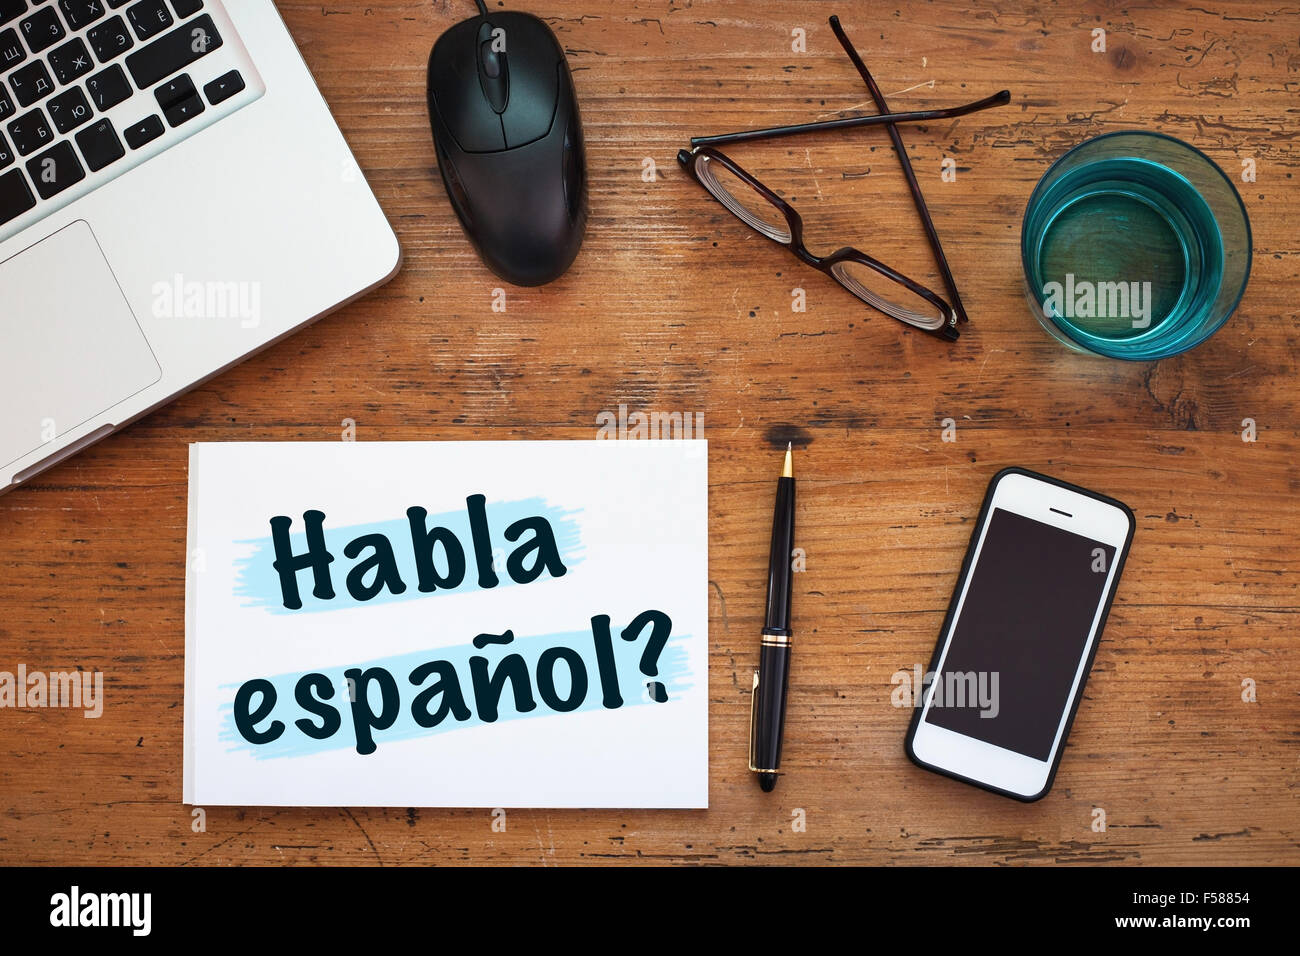 do you speak spanish, Habla español - Stock Image